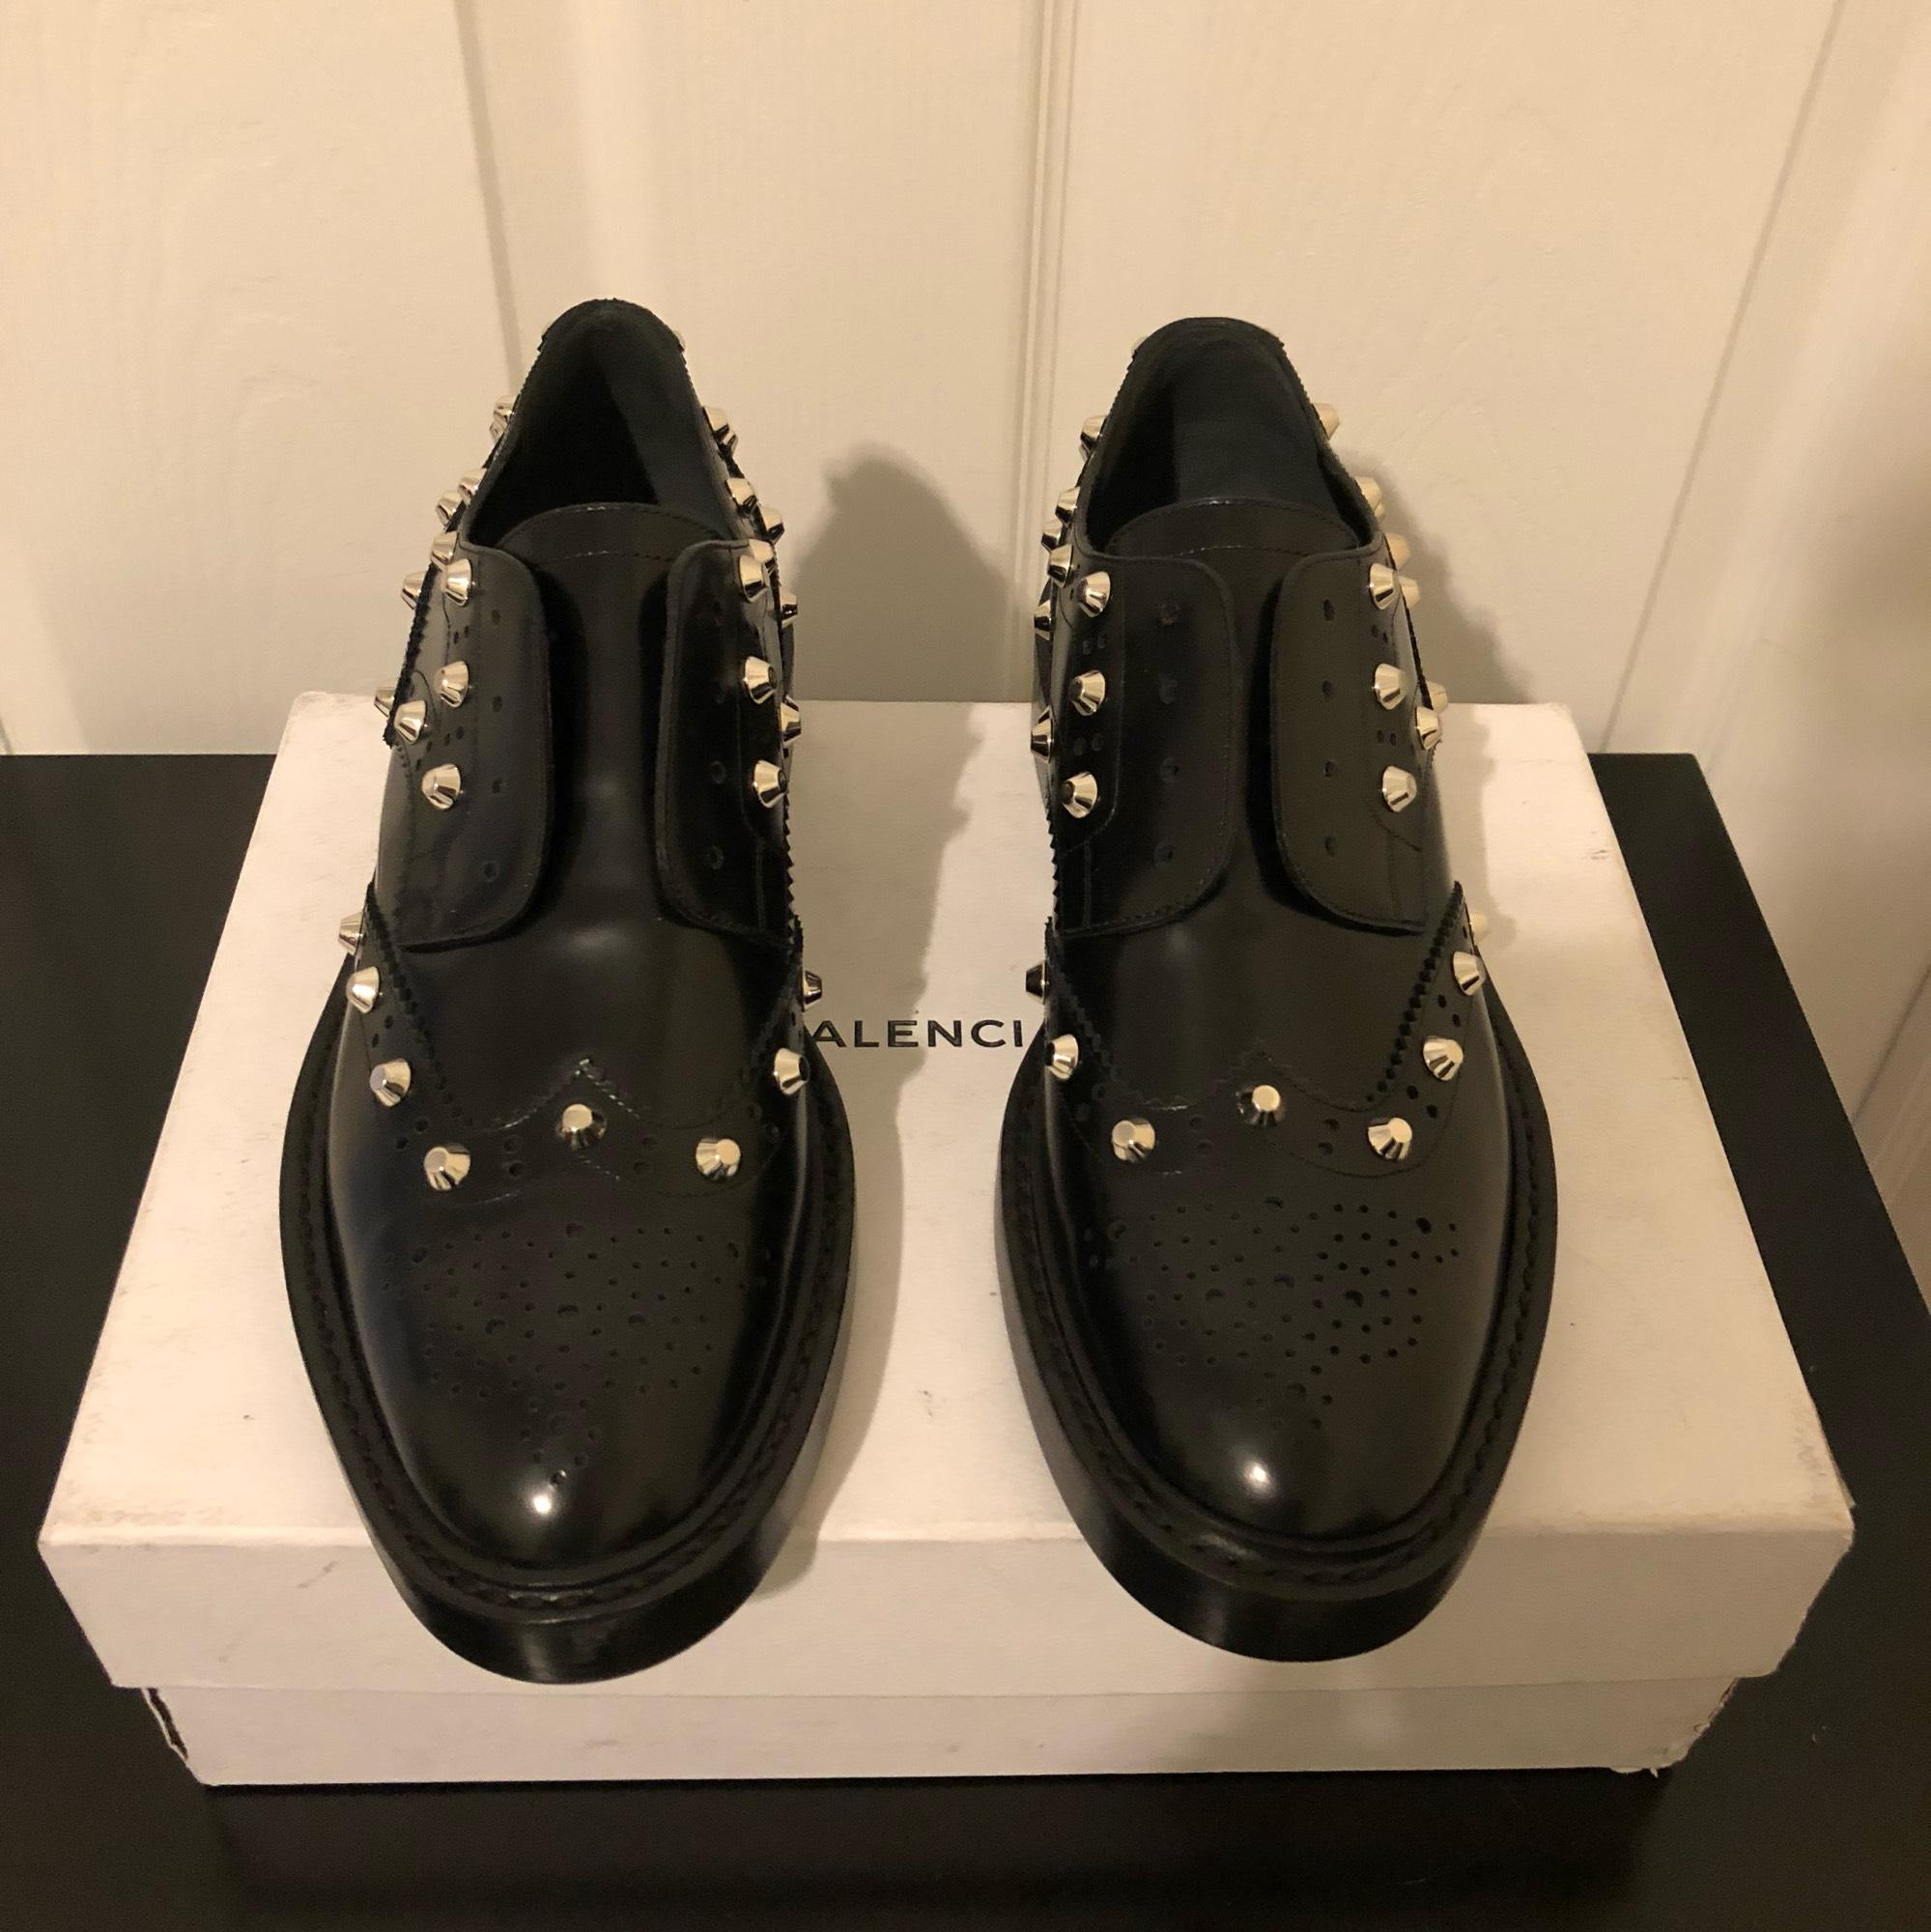 brand new unisex discount footlocker pictures Balenciaga Leather Laceless Oxfords cheap sale sneakernews outlet shopping online really sale online bAyktVv